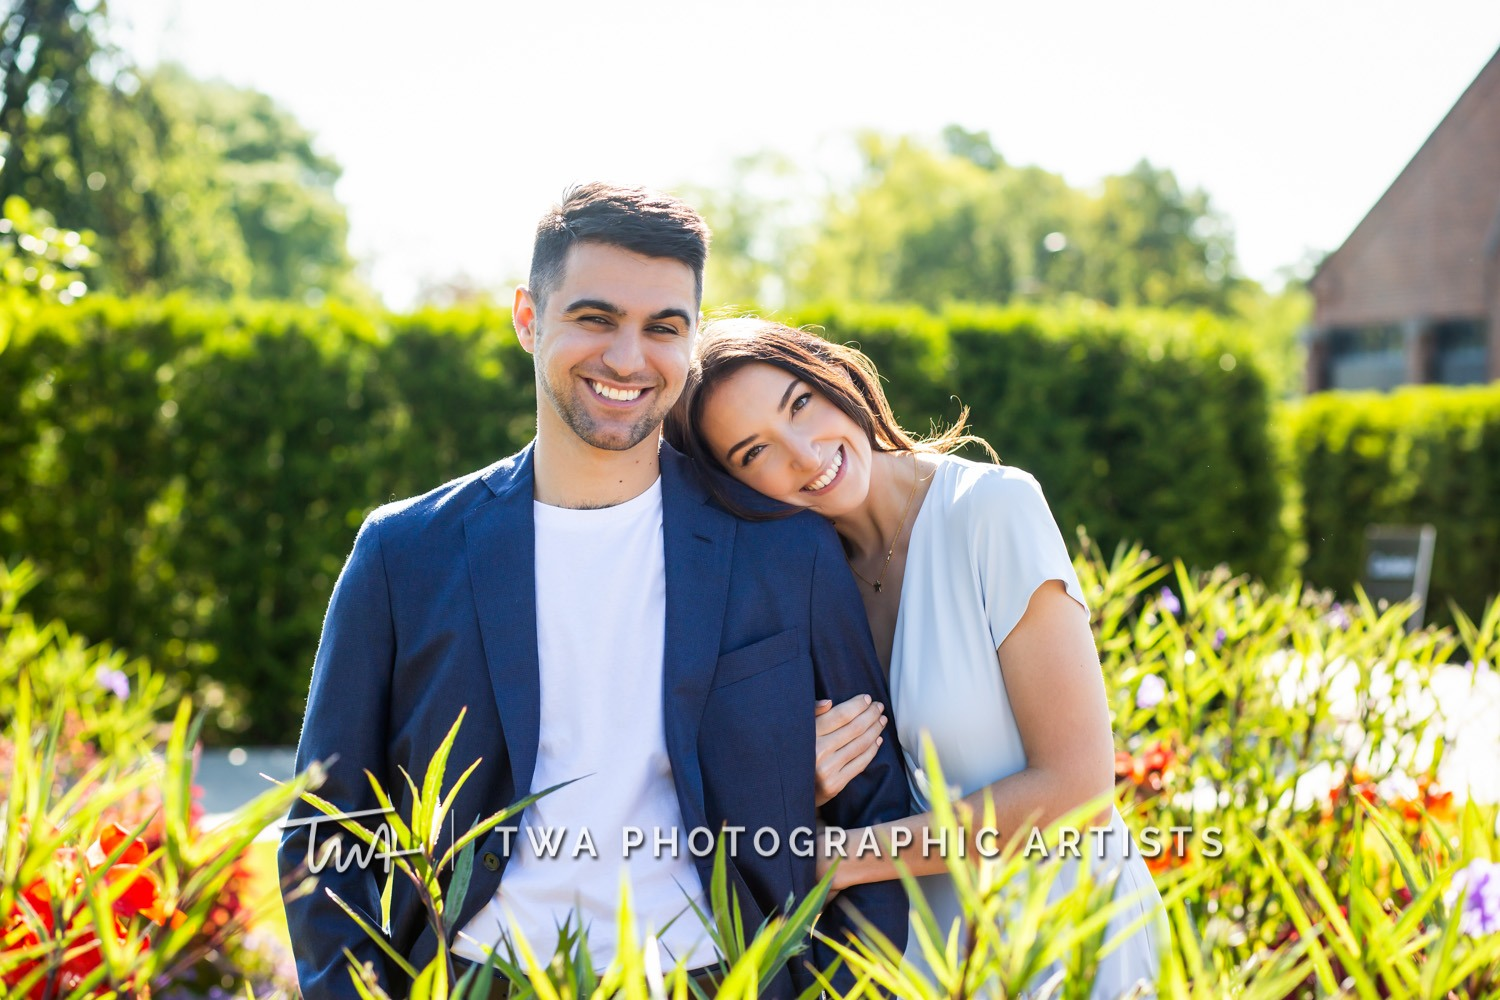 Chicago-Wedding-Photographer-TWA-Photographic-Artists-Cantigny-Park_Geraci_Vlahos_MJ-003